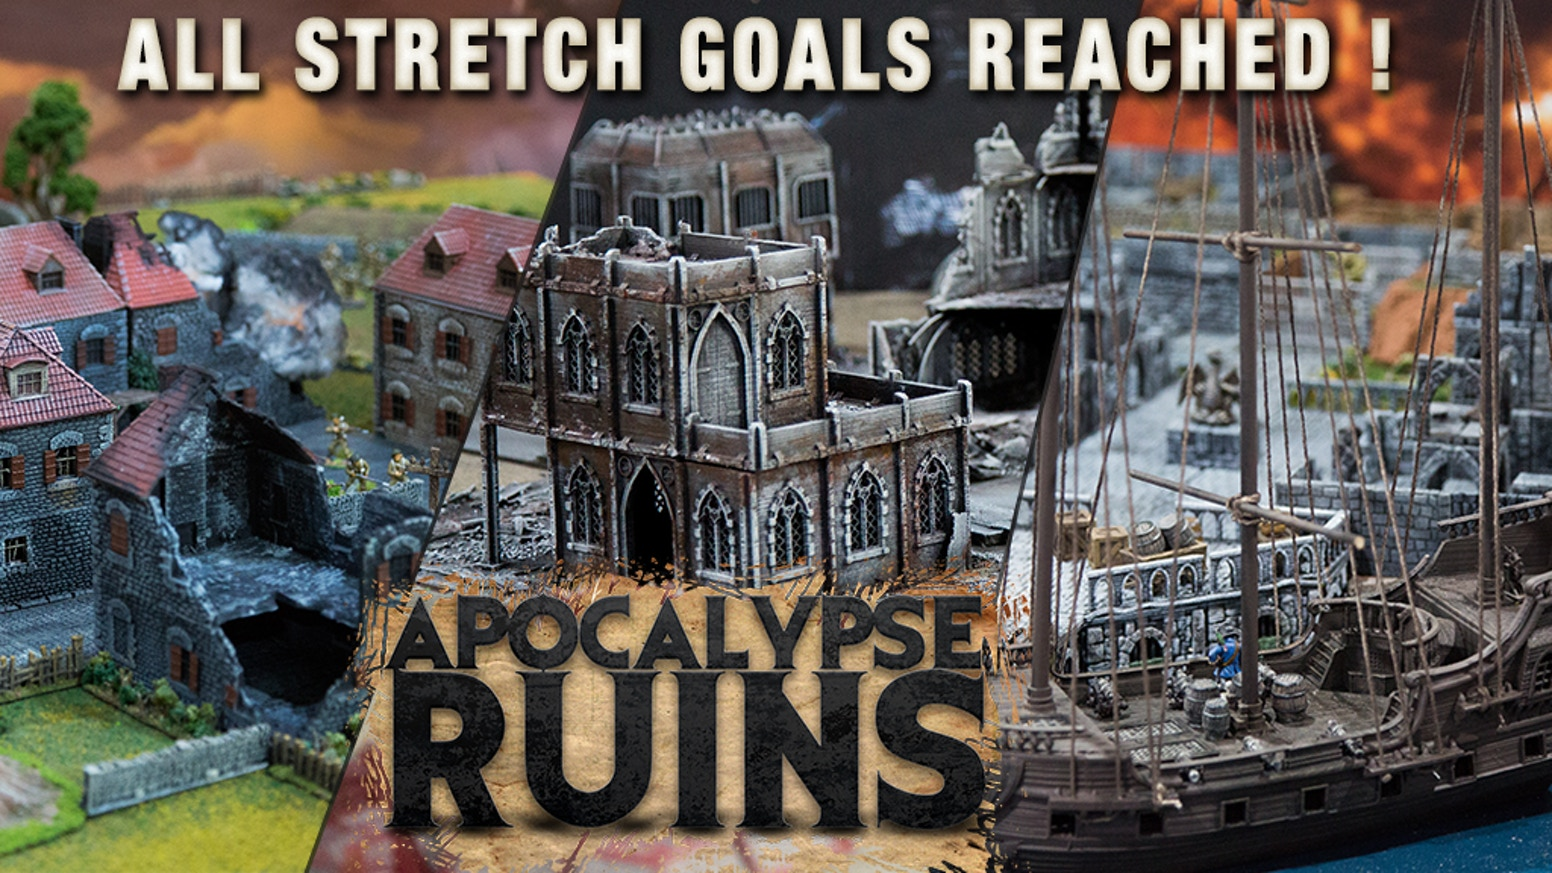 APOCALYPSE RUINS - Modular gaming ruins for Wargames and RPG by